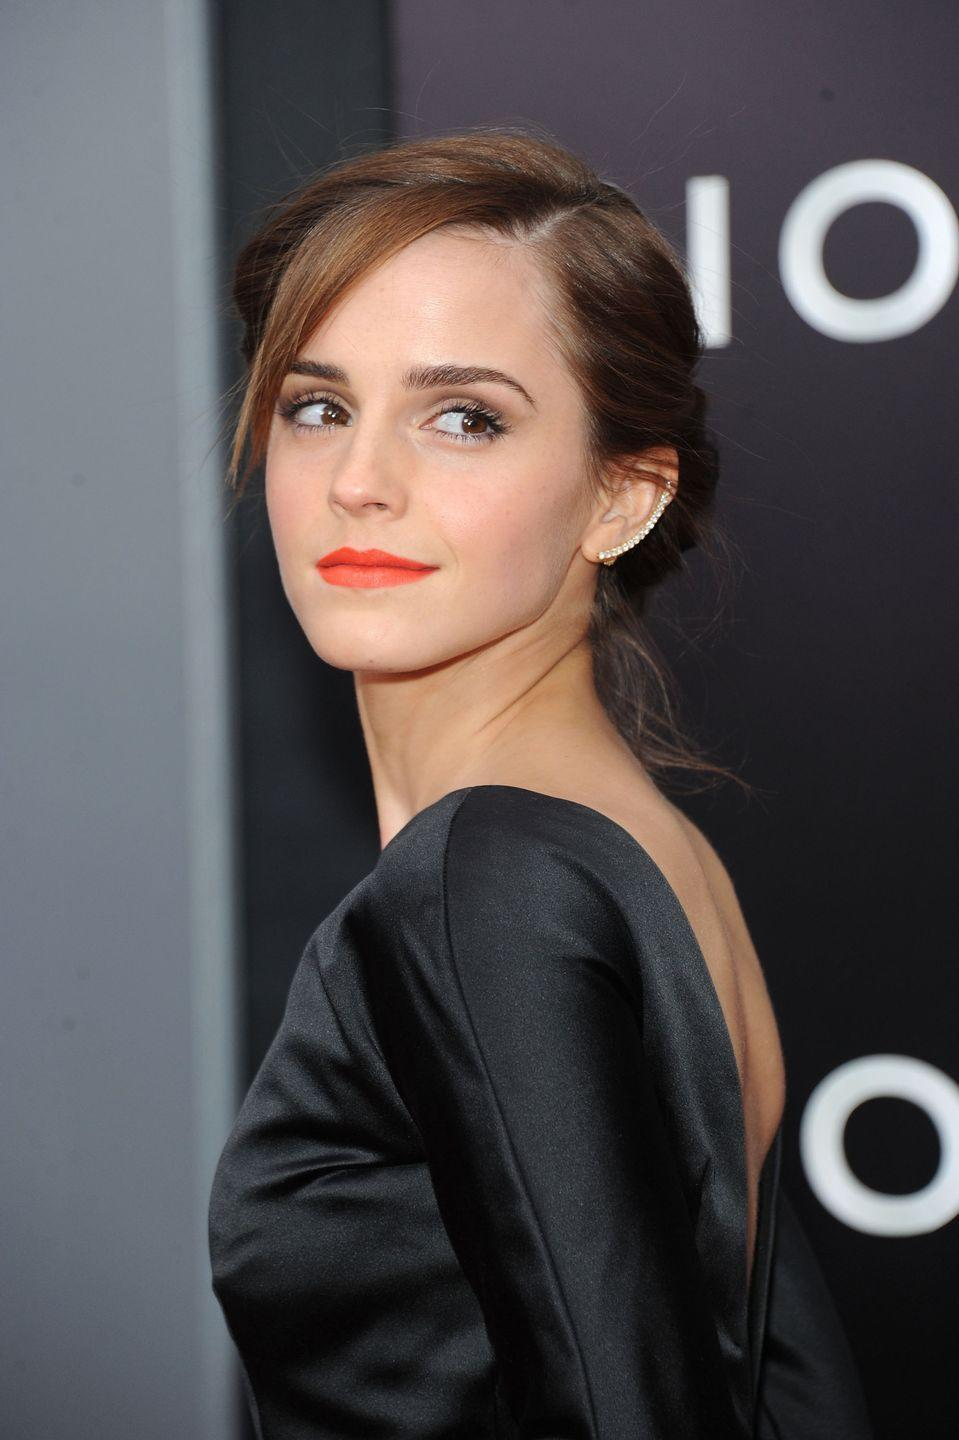 """<p>Even though Emma Watson found fame at a young age, the <em>Harry Potter </em>star didn't let that stop her from earning a degree–or showing off her athletic skills. While studying at Brown University, Watson <a href=""""https://www.theodysseyonline.com/24-reasons-emma-watson-awesome"""" rel=""""nofollow noopener"""" target=""""_blank"""" data-ylk=""""slk:joined the club field hockey team"""" class=""""link rapid-noclick-resp"""">joined the club field hockey team</a>. </p>"""